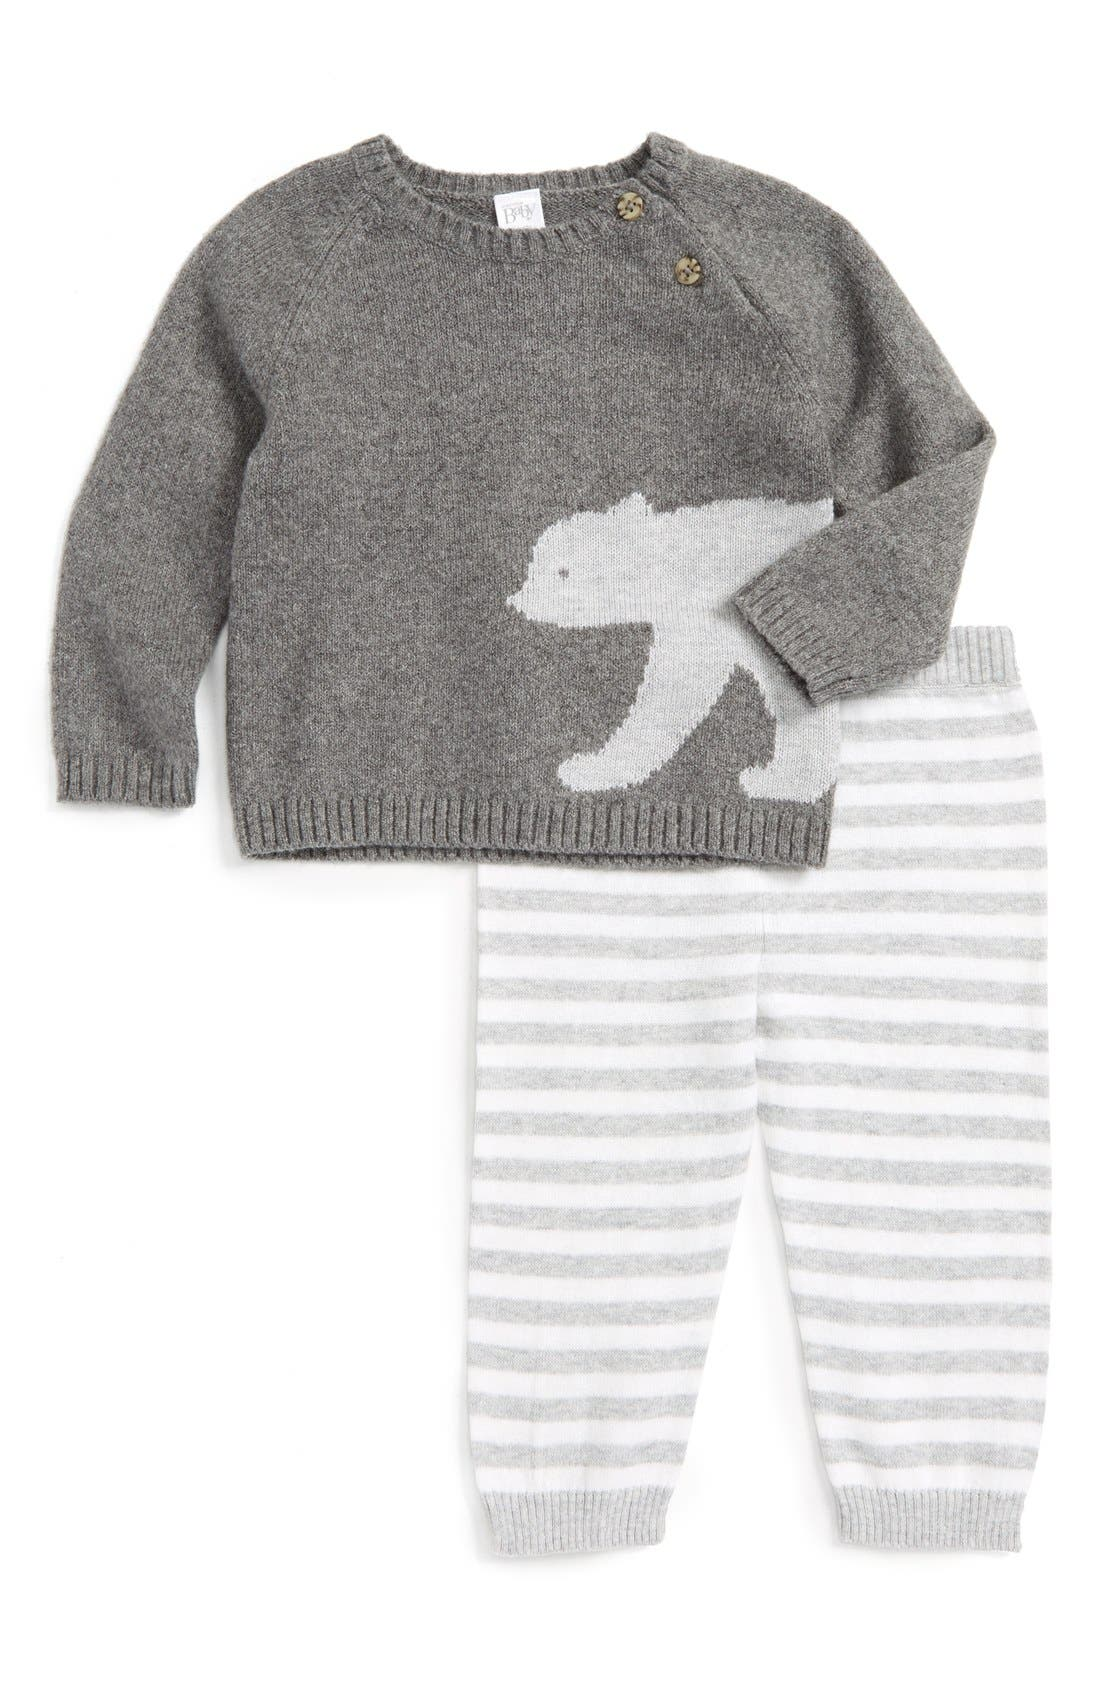 Alternate Image 1 Selected - Nordstrom Baby Knit Sweater & Pants Set (Baby)